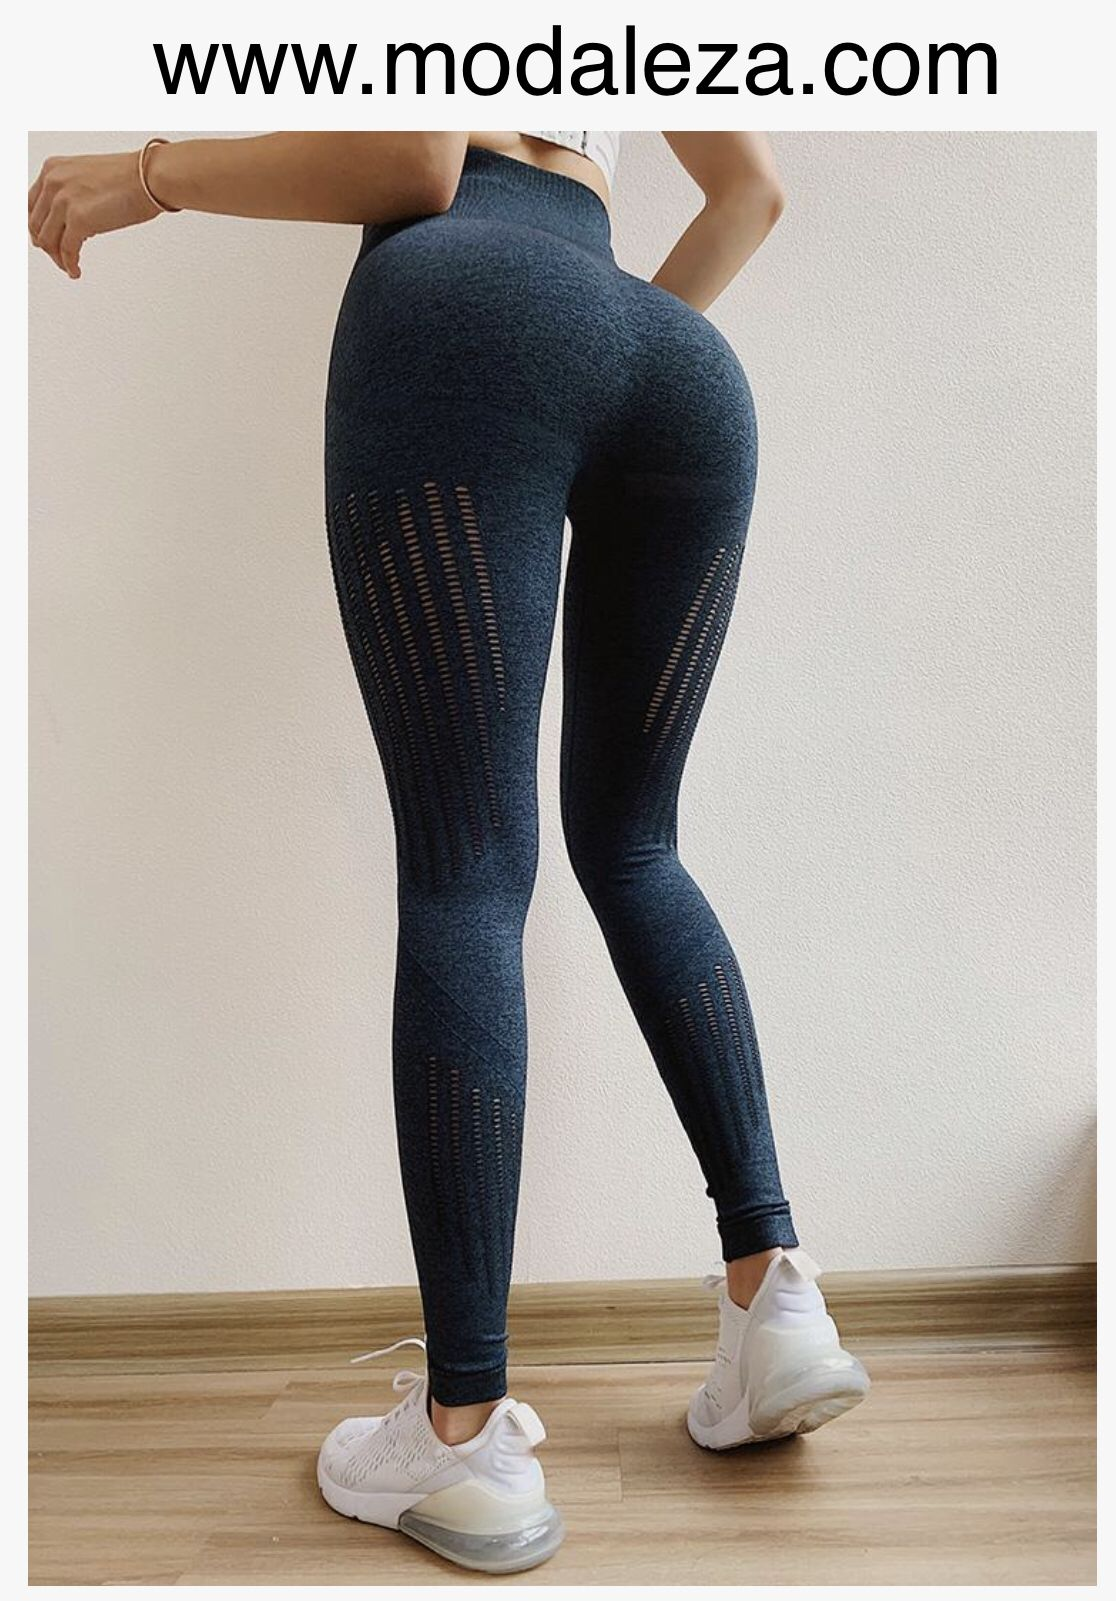 4fb1911bbb937 The best breathable sexy leggings multi color is available #leggings #gym  #gymnastics #fitness #fitnessmotivation #yoga #yogapants